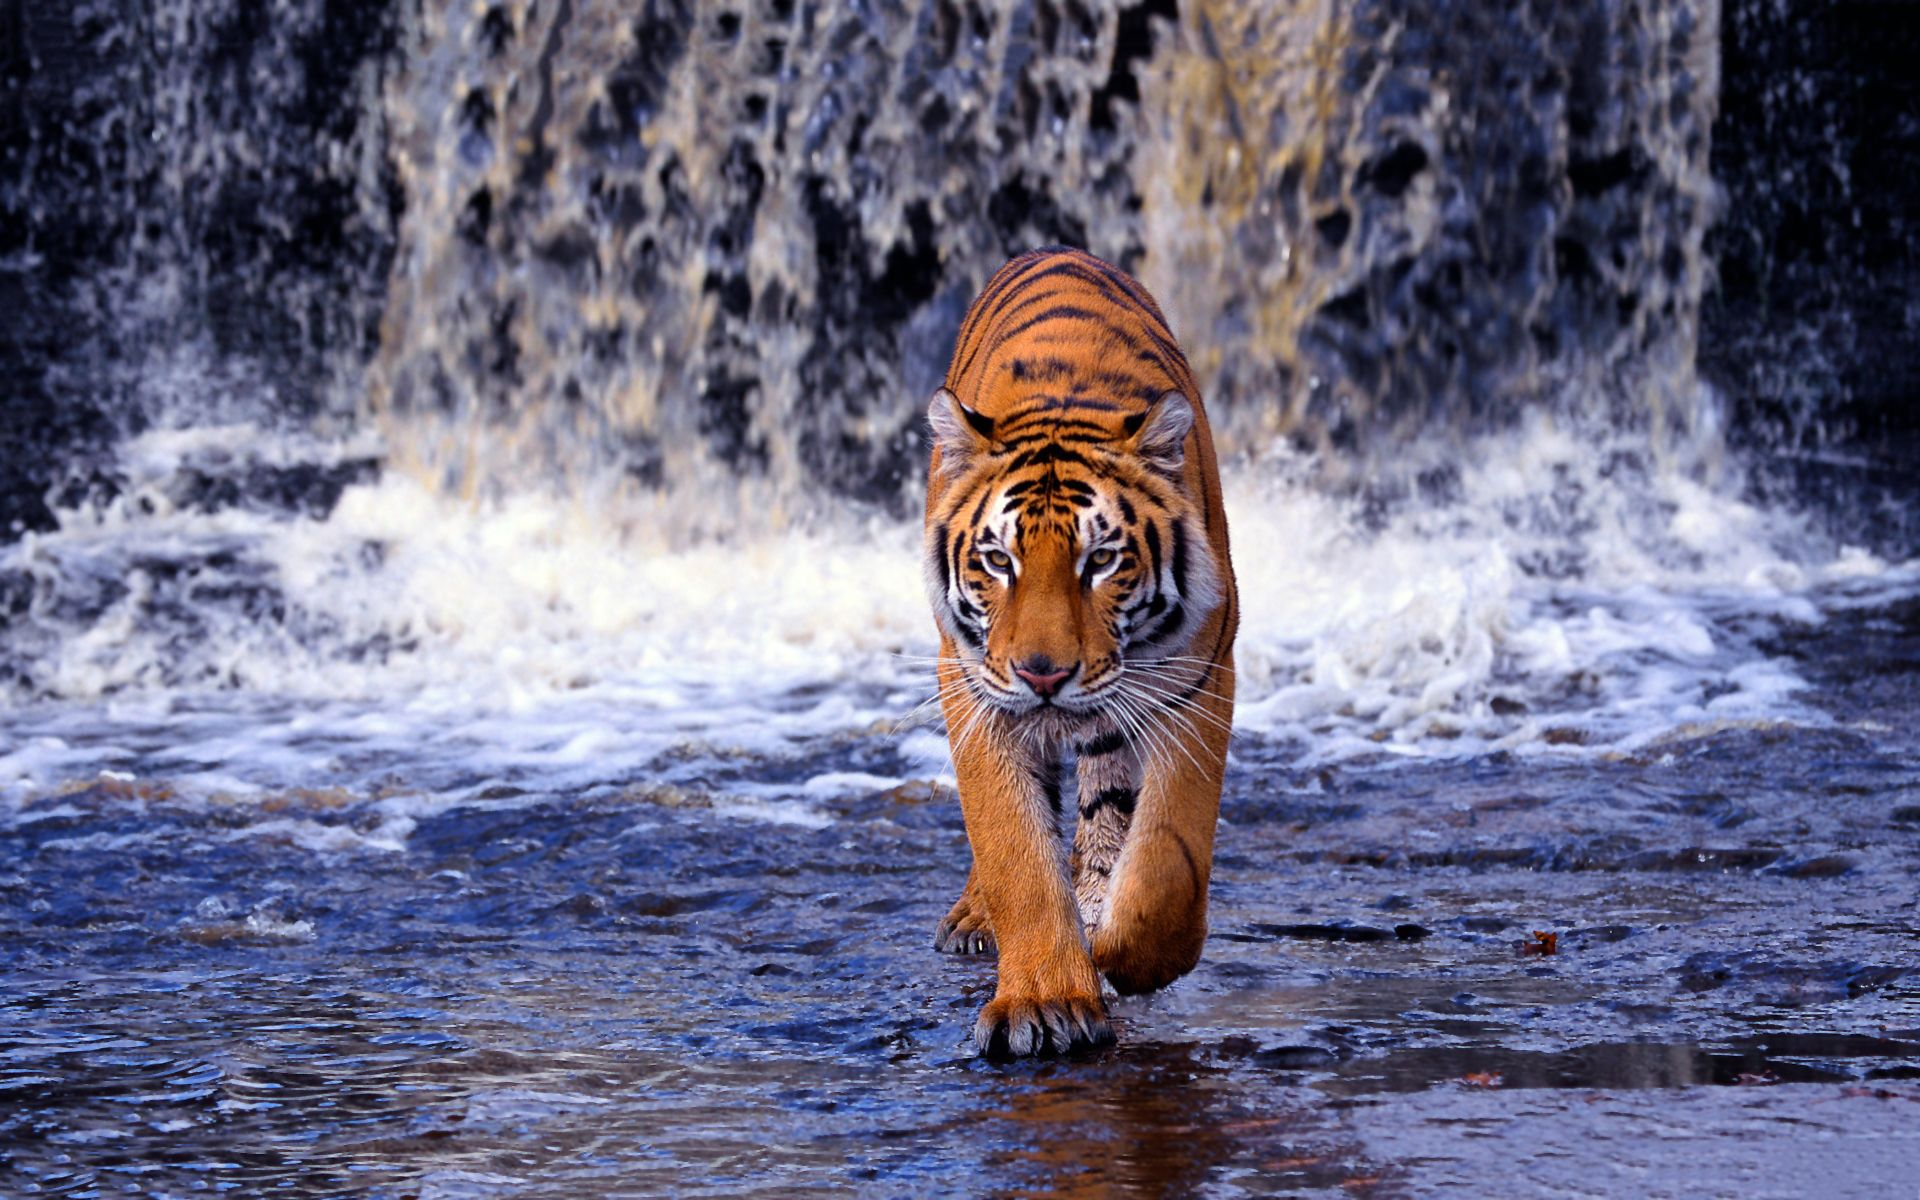 Royal bengal tiger is a great wallpaper for your computer desktop and - Jungle Waterfall Hd Desktop Wallpaper Fullscreen Mobile Dual Hd Wallpapers Pinterest Tiger Wallpaper And Wallpaper